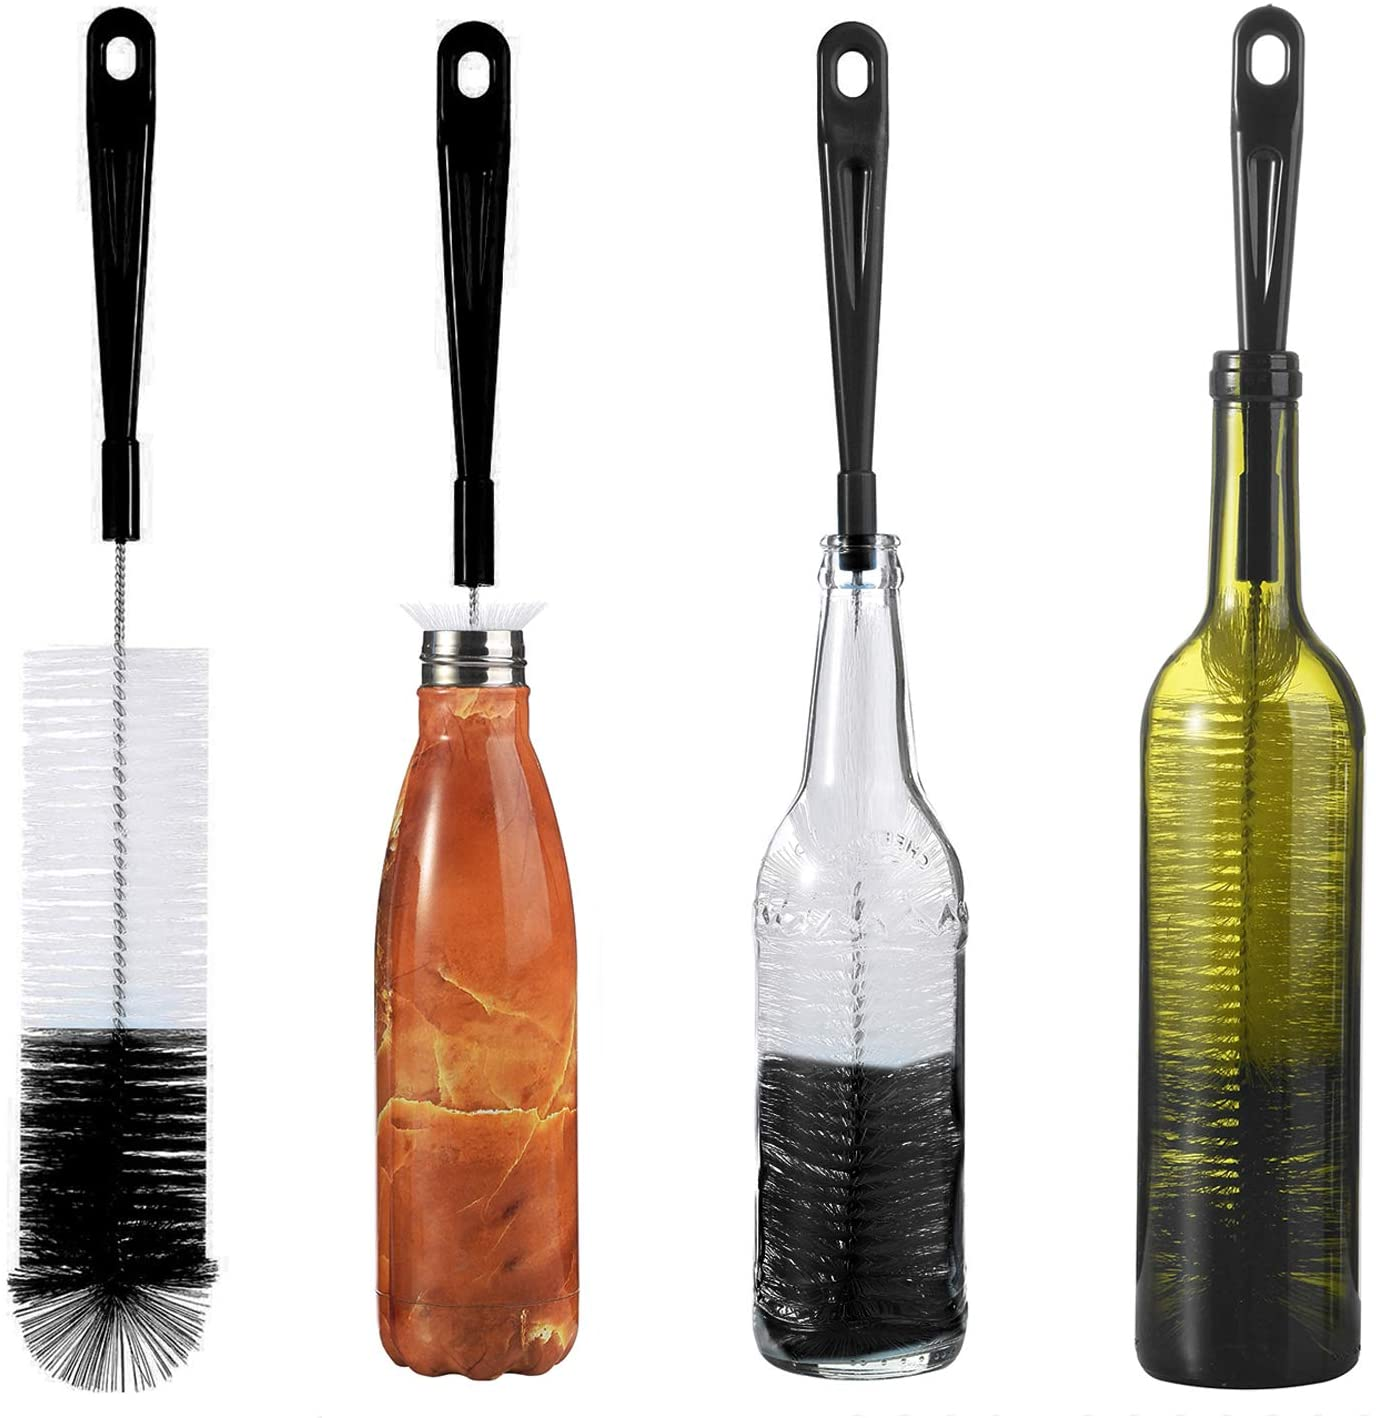 ALINK 16in Extra Long Black Bottle Cleaning Brush Cleaner for Washing Narrow Neck